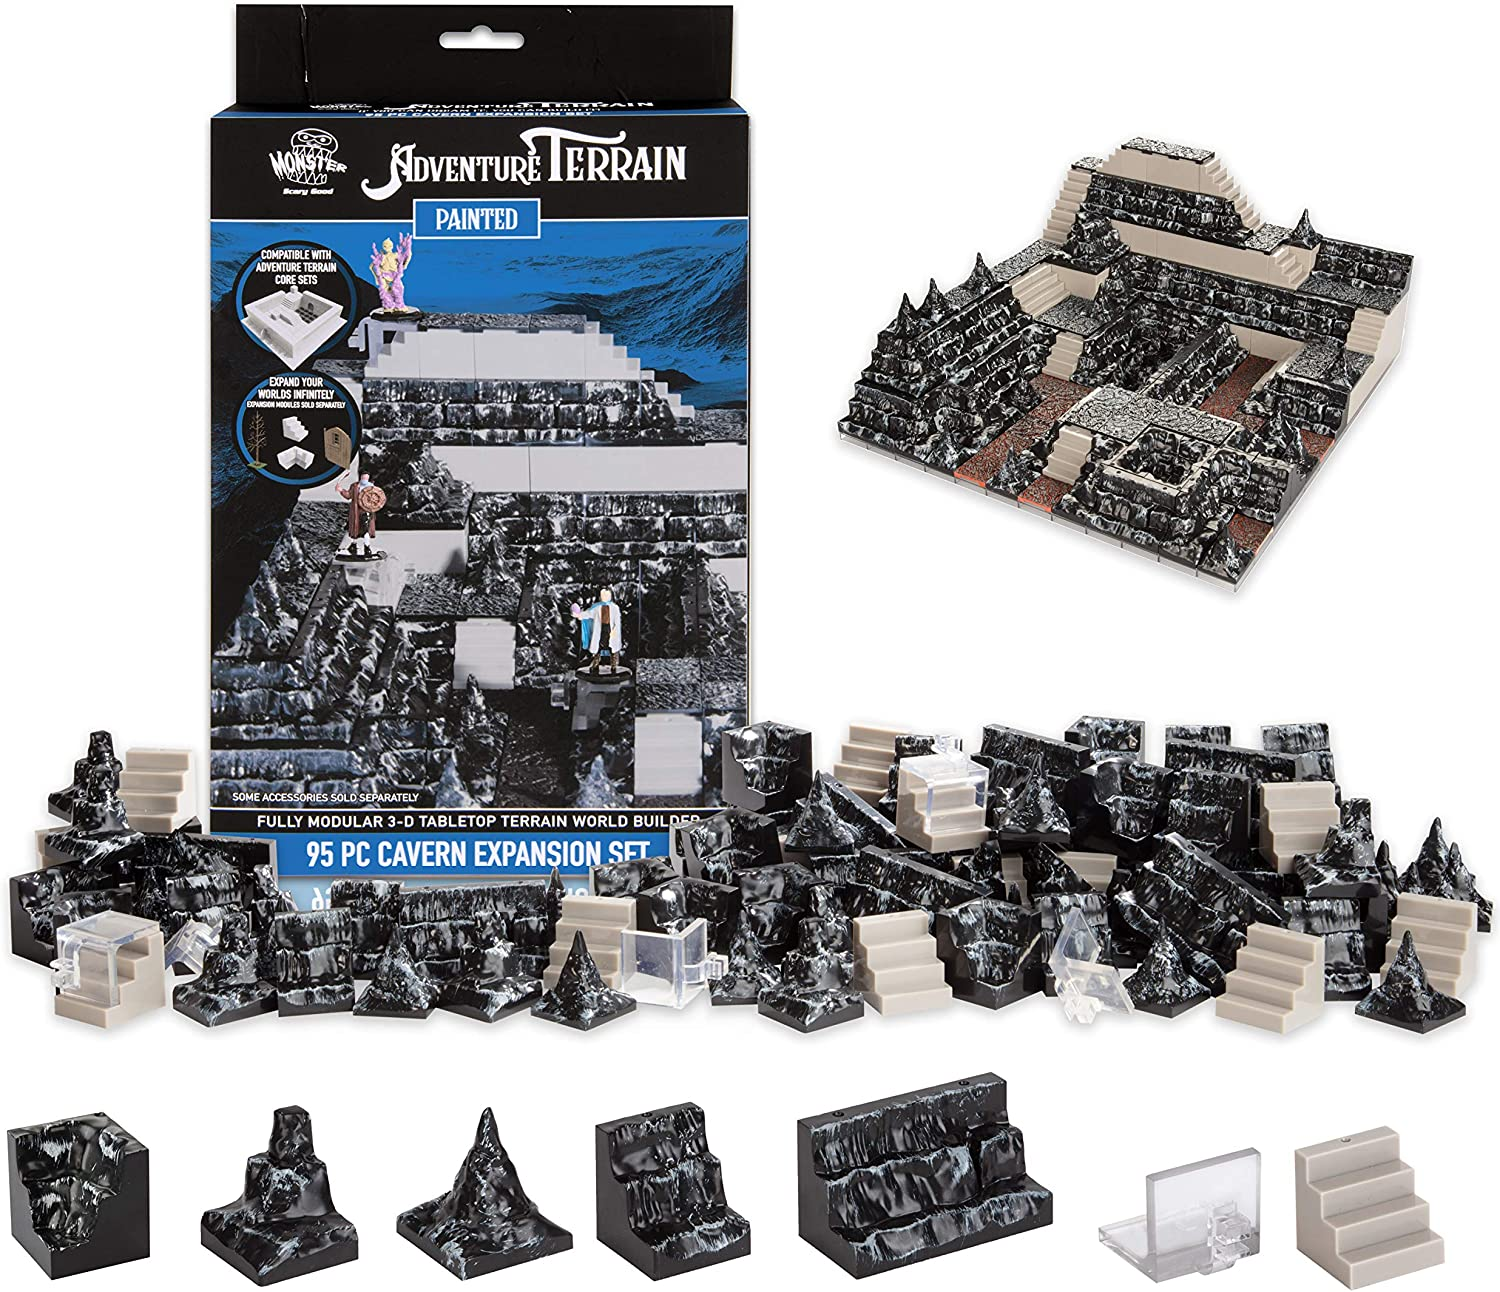 Monster Adventure Terrain - sold out 95pc Expansion Cavern Set High quality Mo Fully